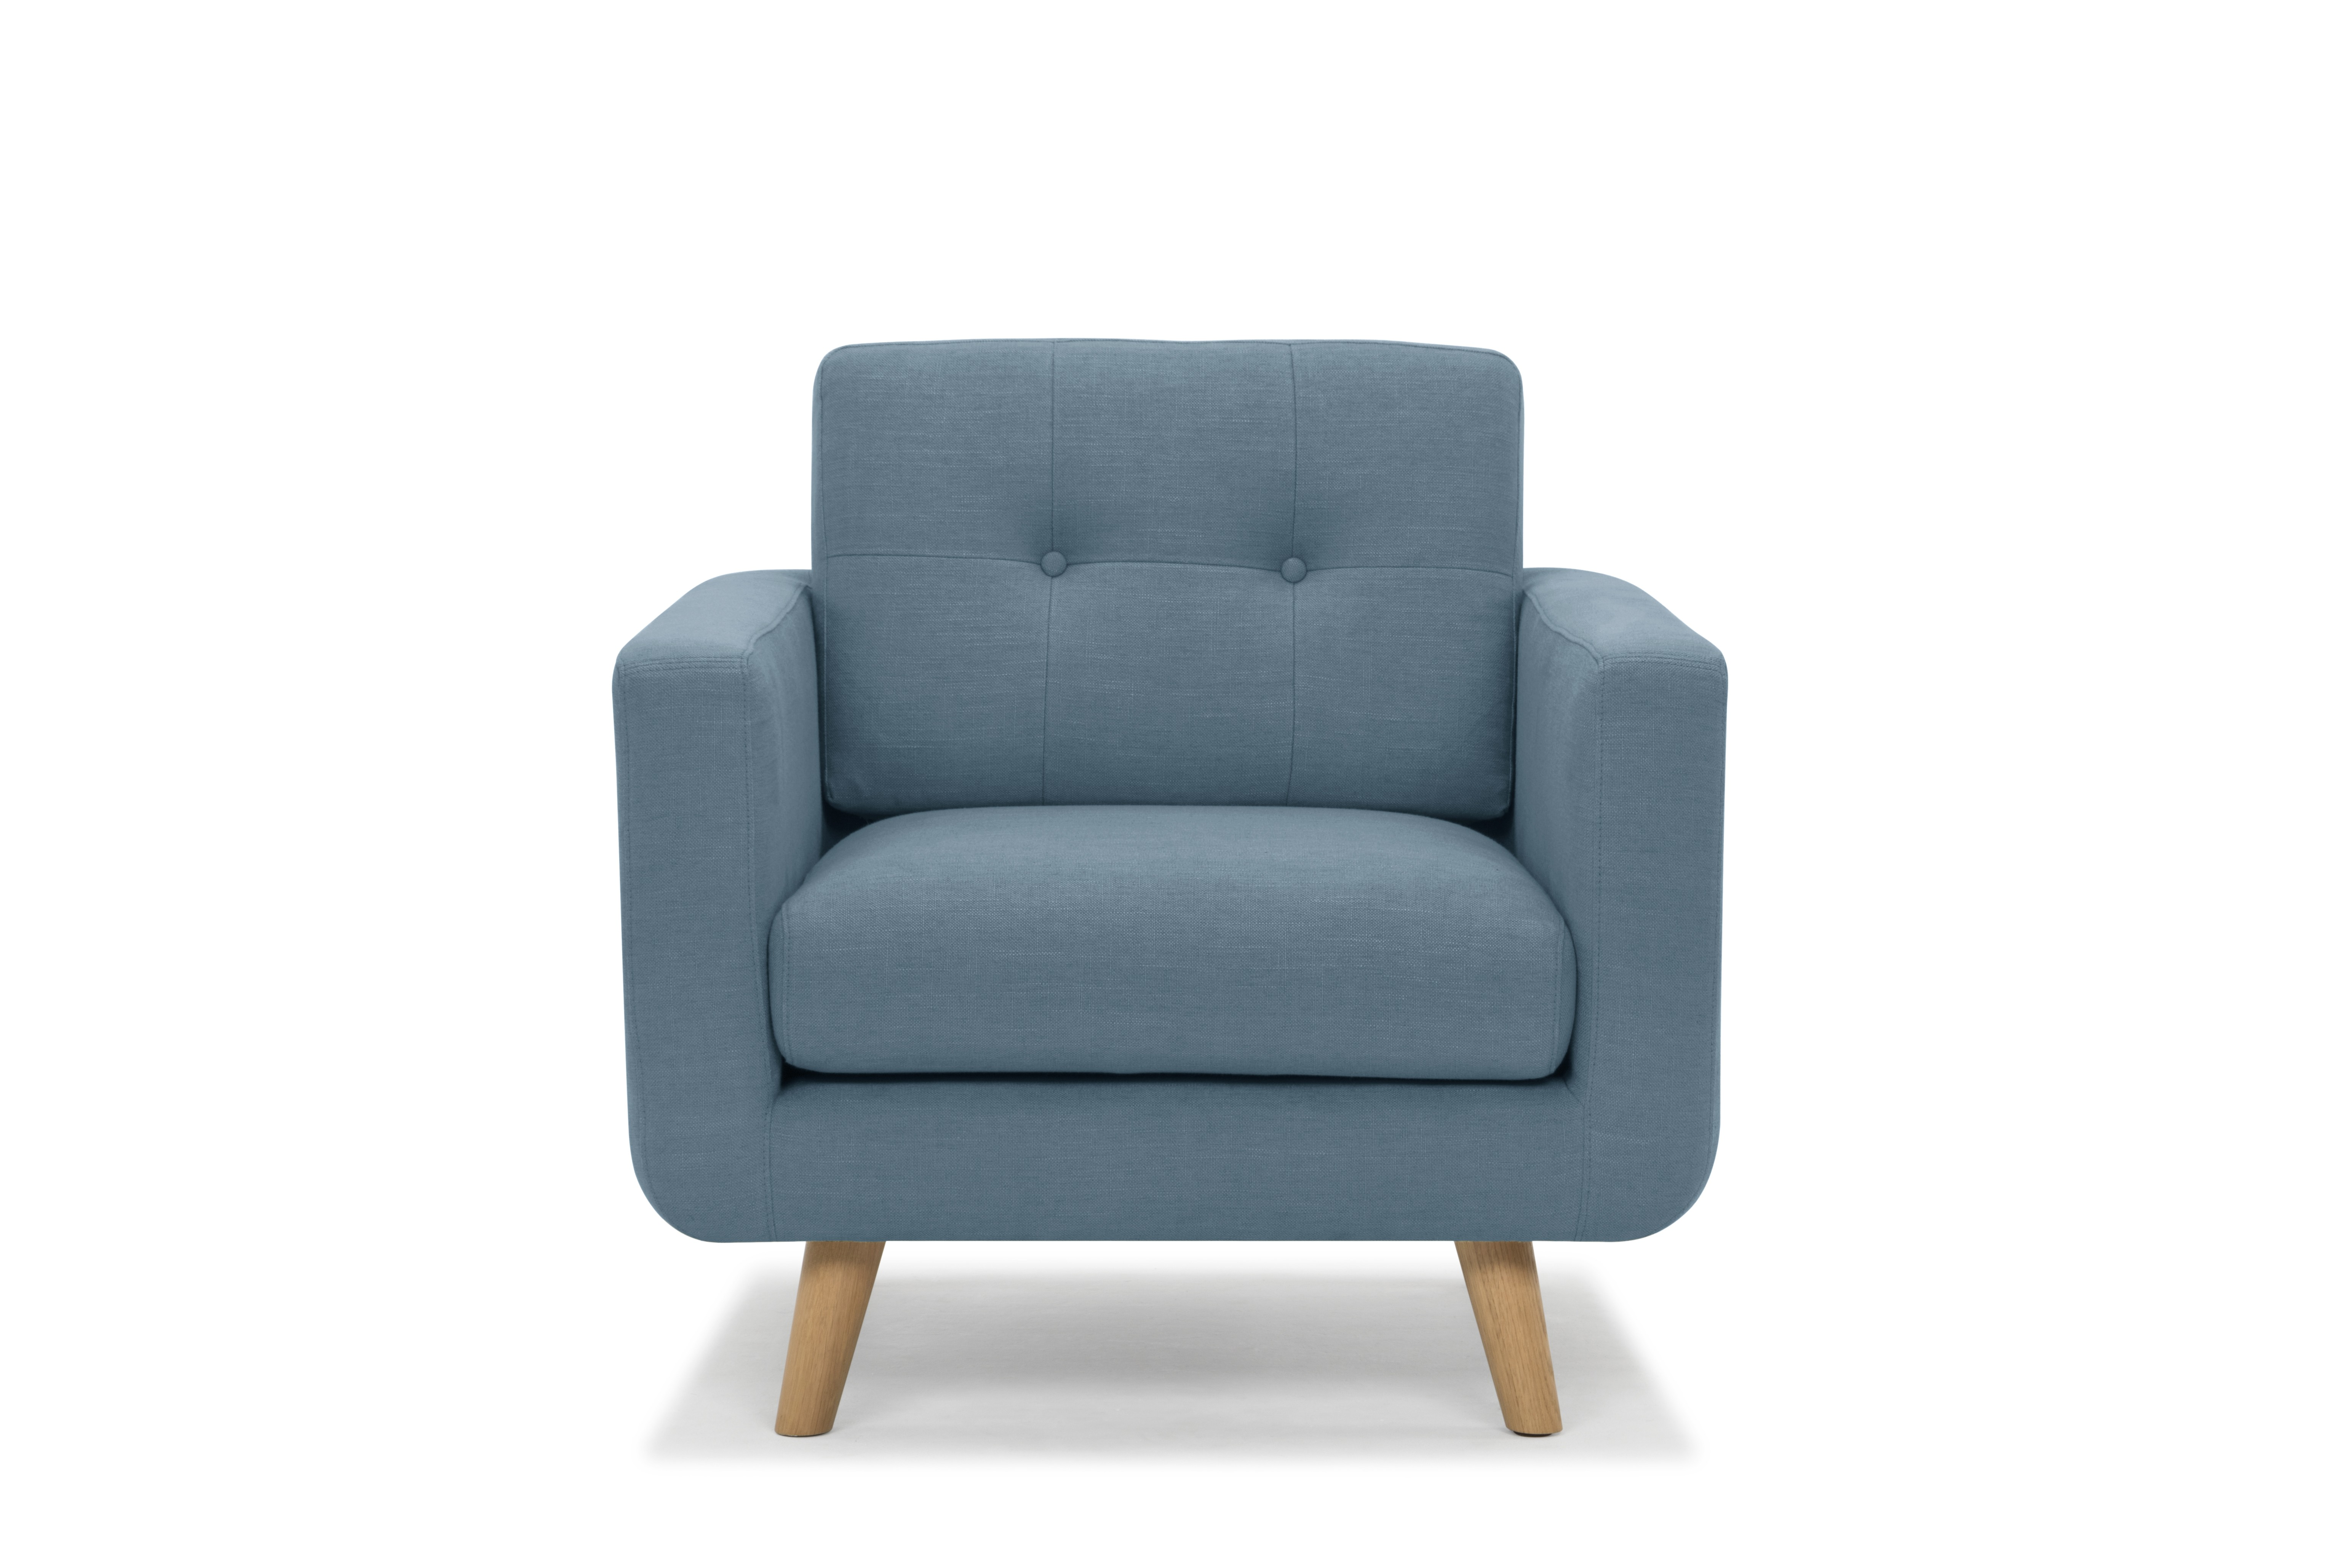 Achat Meuble Fauteuil Mobilier Diego Vente Scandinave Tissu Winner WH9IDE2